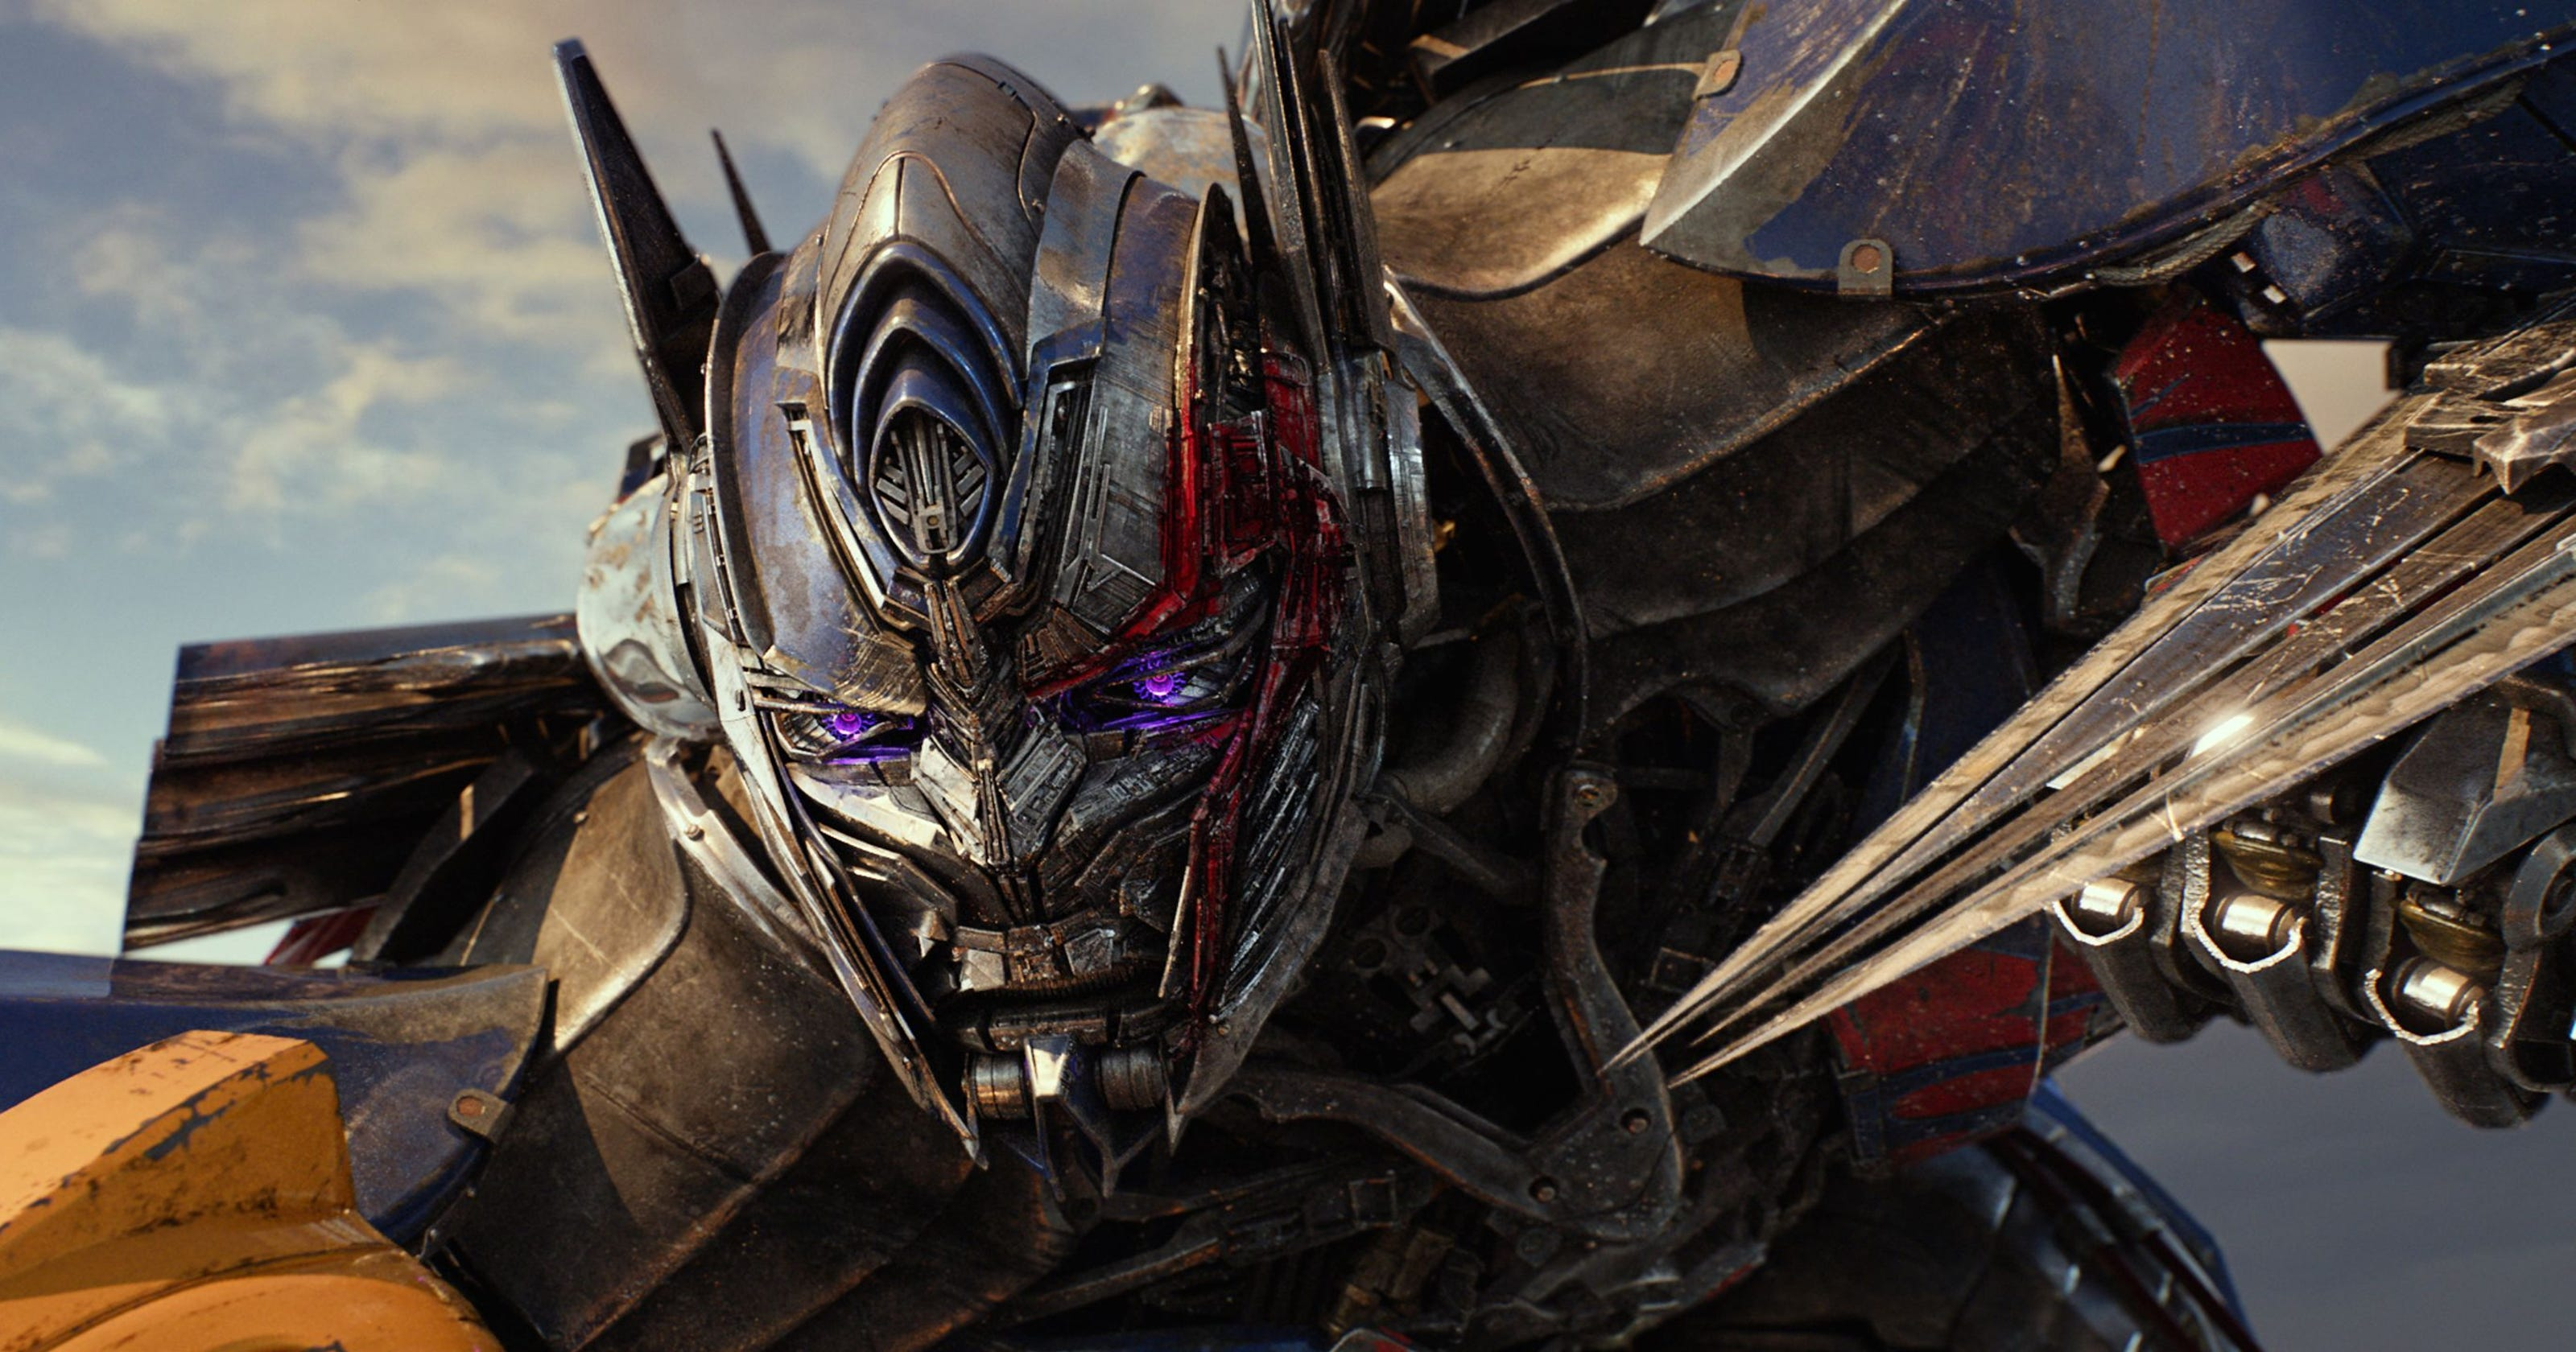 Review: 'Transformers: The Last Knight' reaches new level of bad